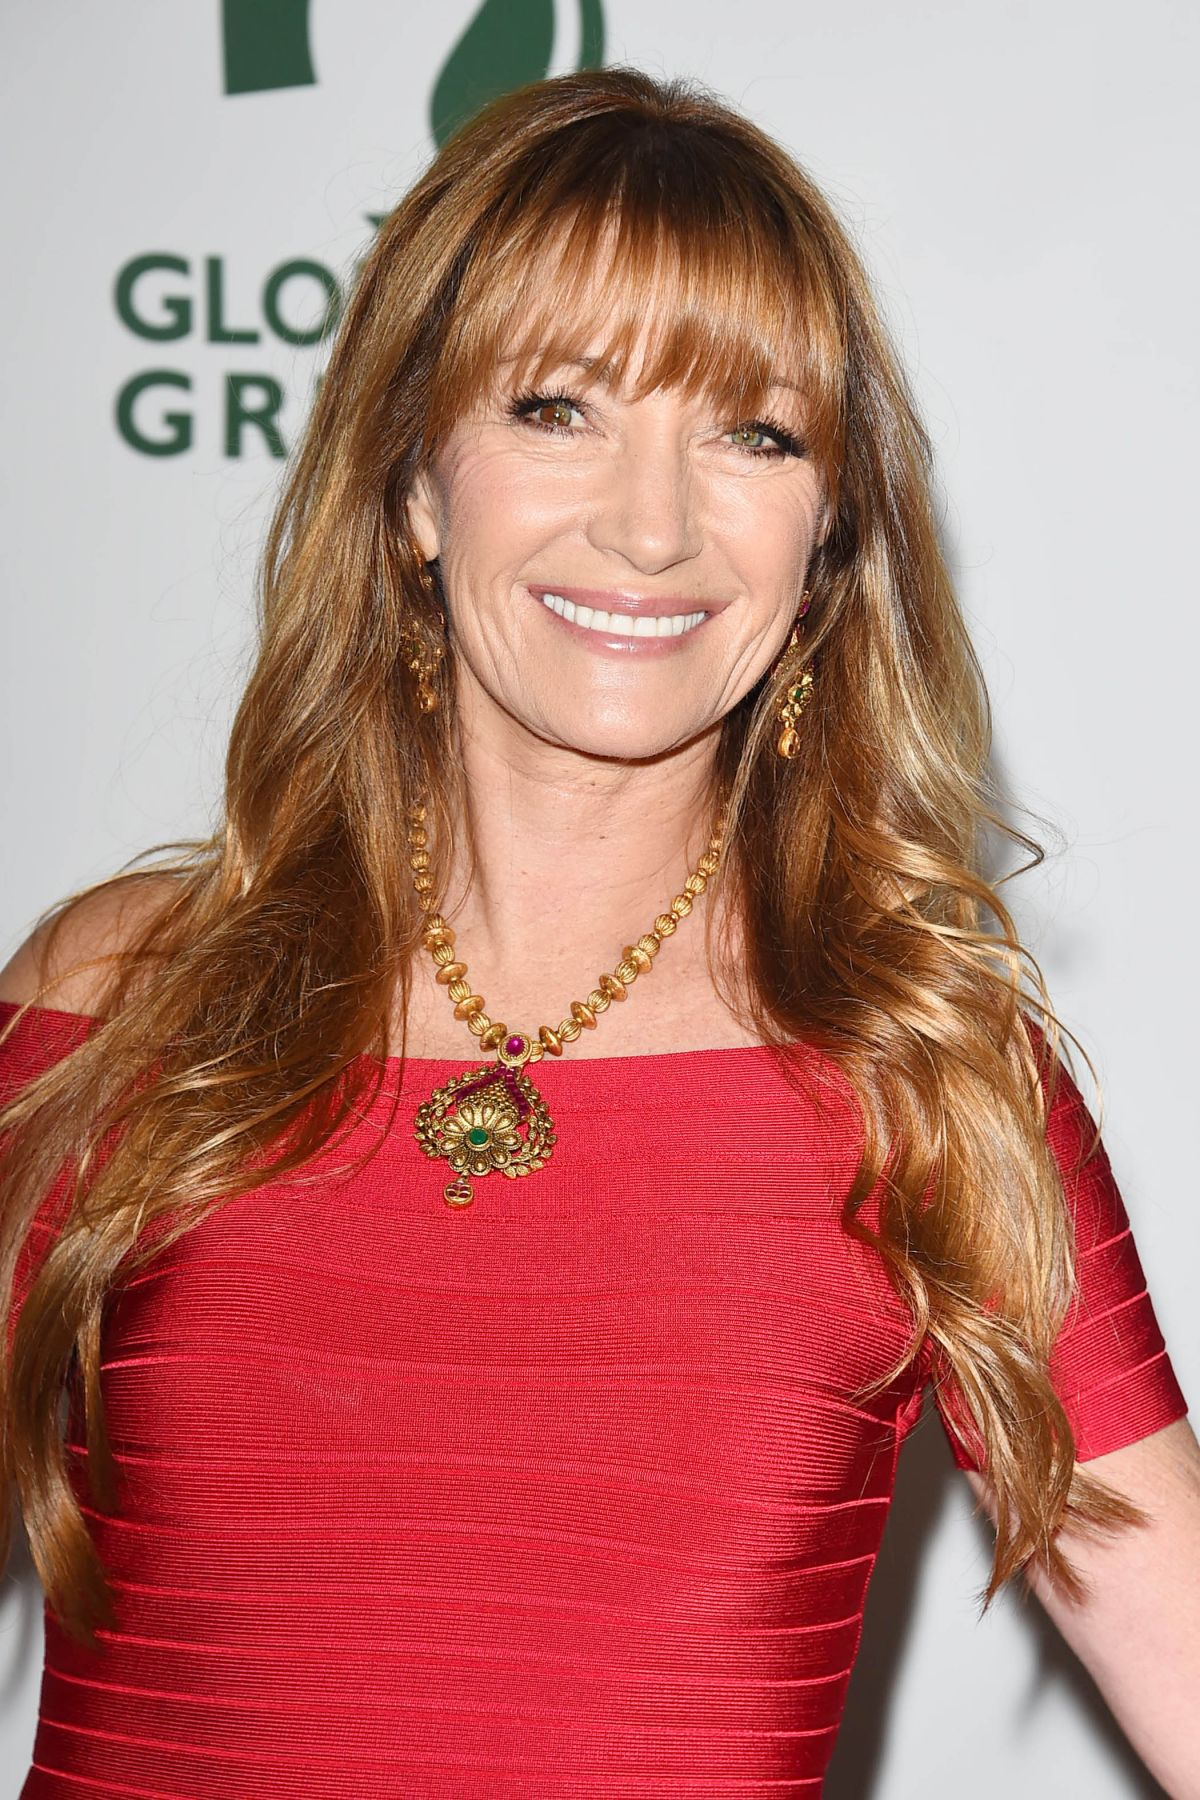 JANE SEYMOUR at Global Green Pre-Oscars Party in Los Angeles 02/28/2018 – HawtCelebs